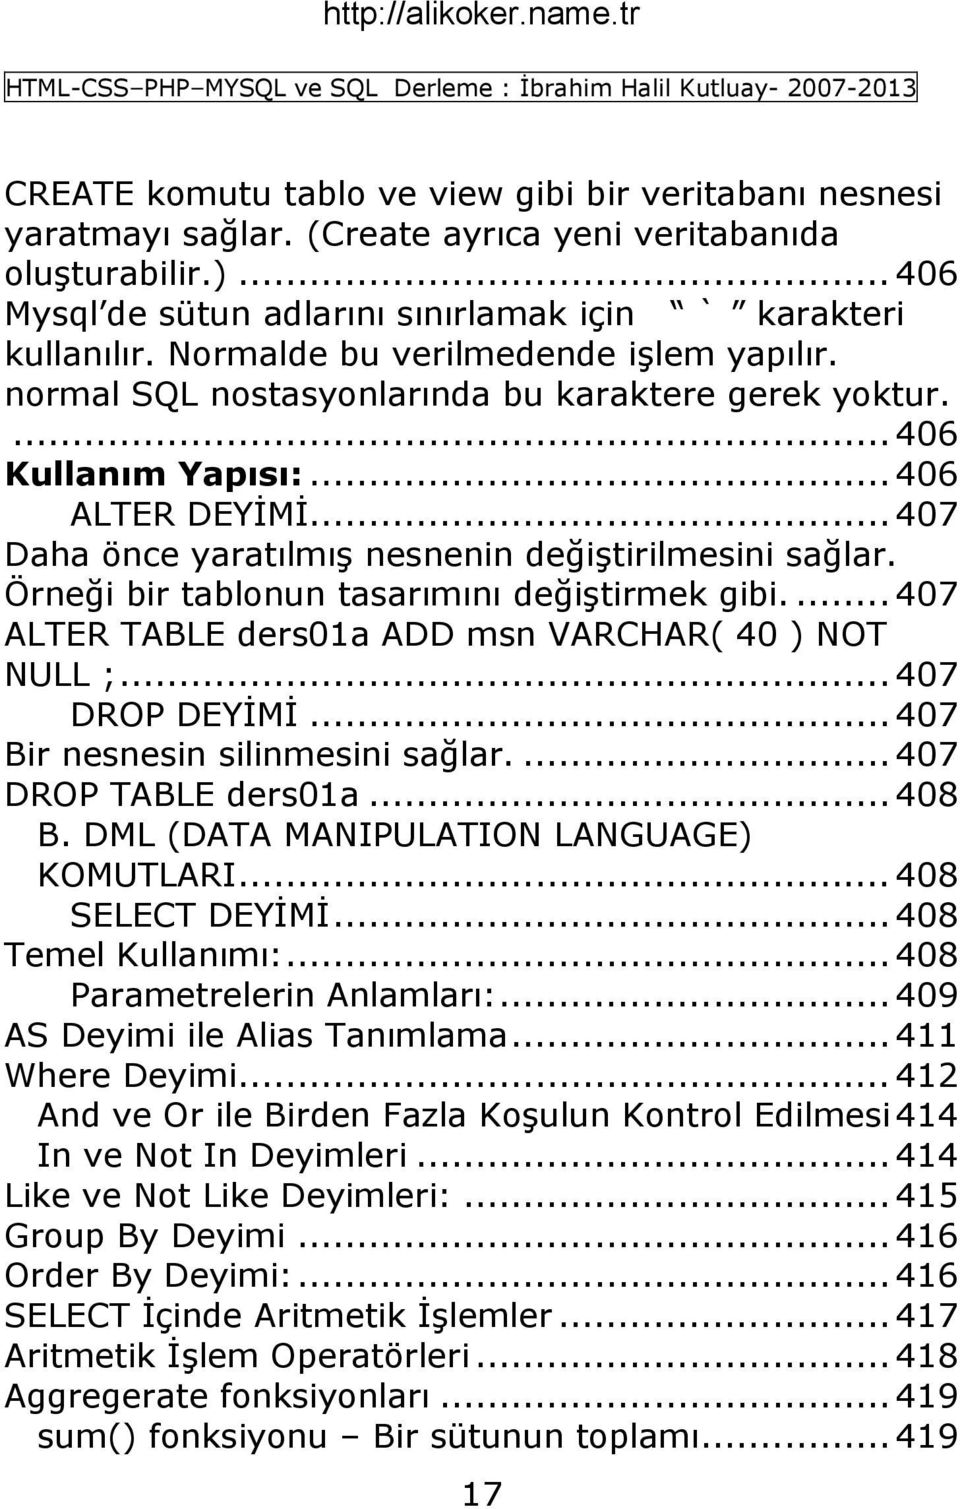 Örneği bir tablonun tasarımını değiģtirmek gibi.... 407 ALTER TABLE ders01a ADD msn VARCHAR( 40 ) NOT NULL ;... 407 DROP DEYĠMĠ... 407 Bir nesnesin silinmesini sağlar.... 407 DROP TABLE ders01a.